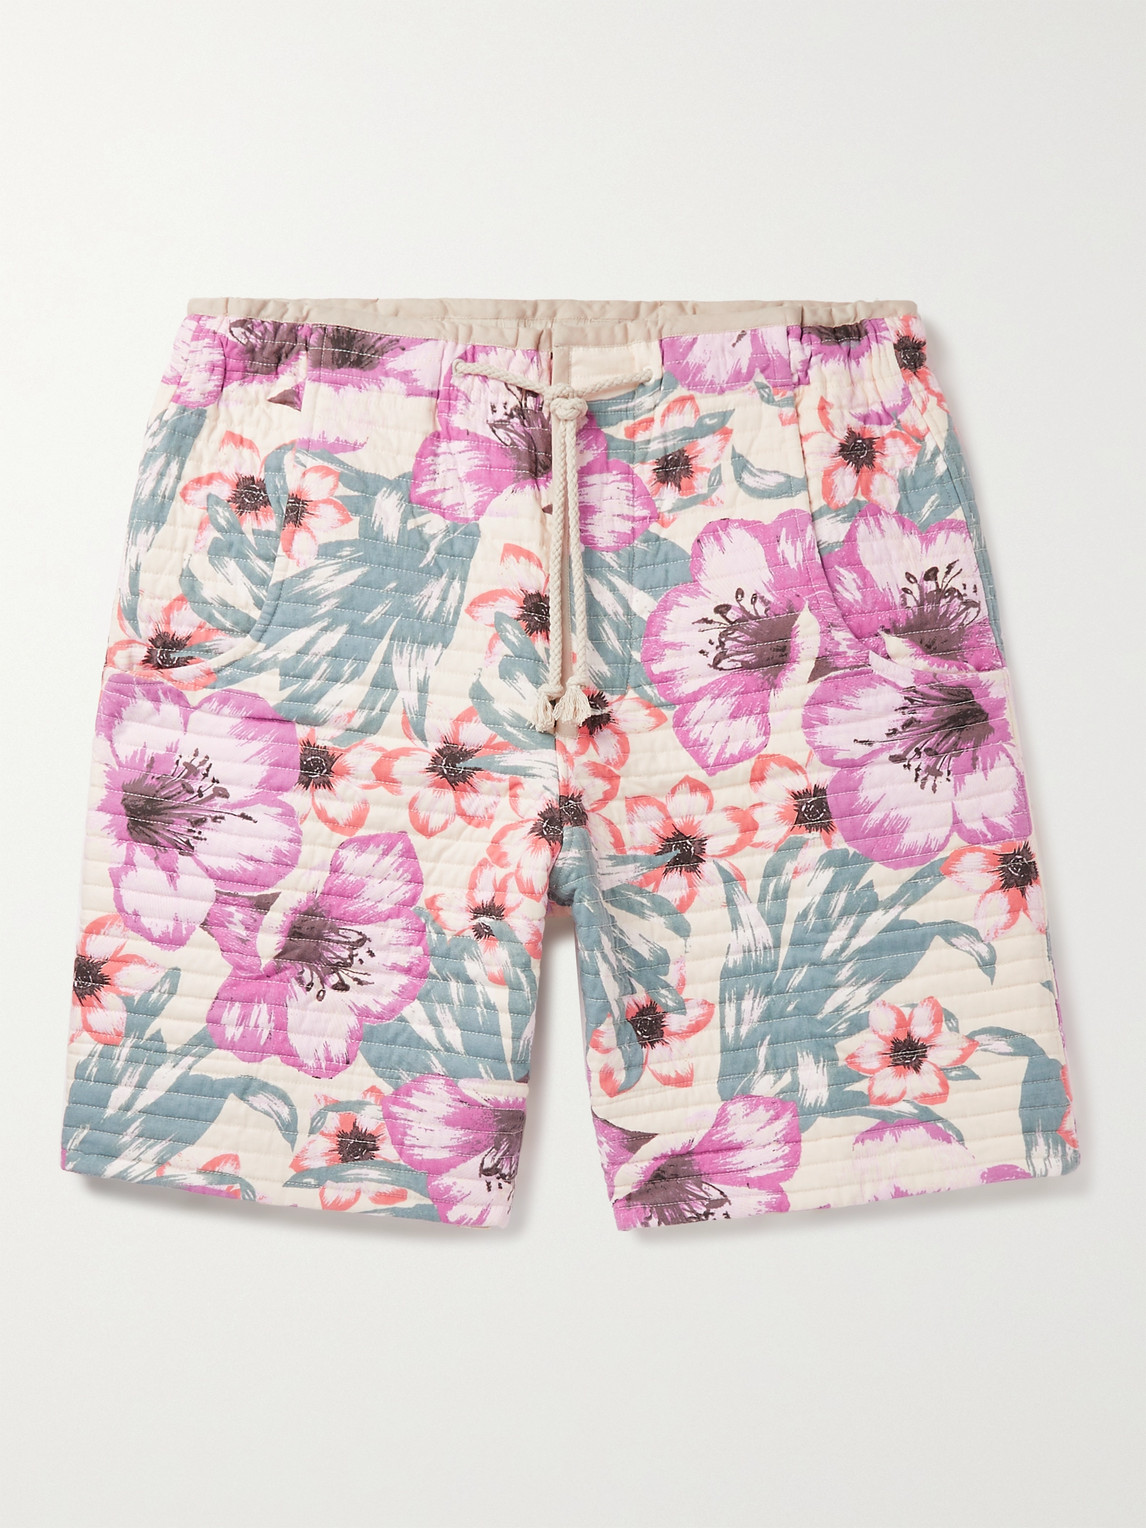 Isabel Marant Cottons HELANI QUILTED FLORAL-PRINT COTTON DRAWSTRING SHORTS